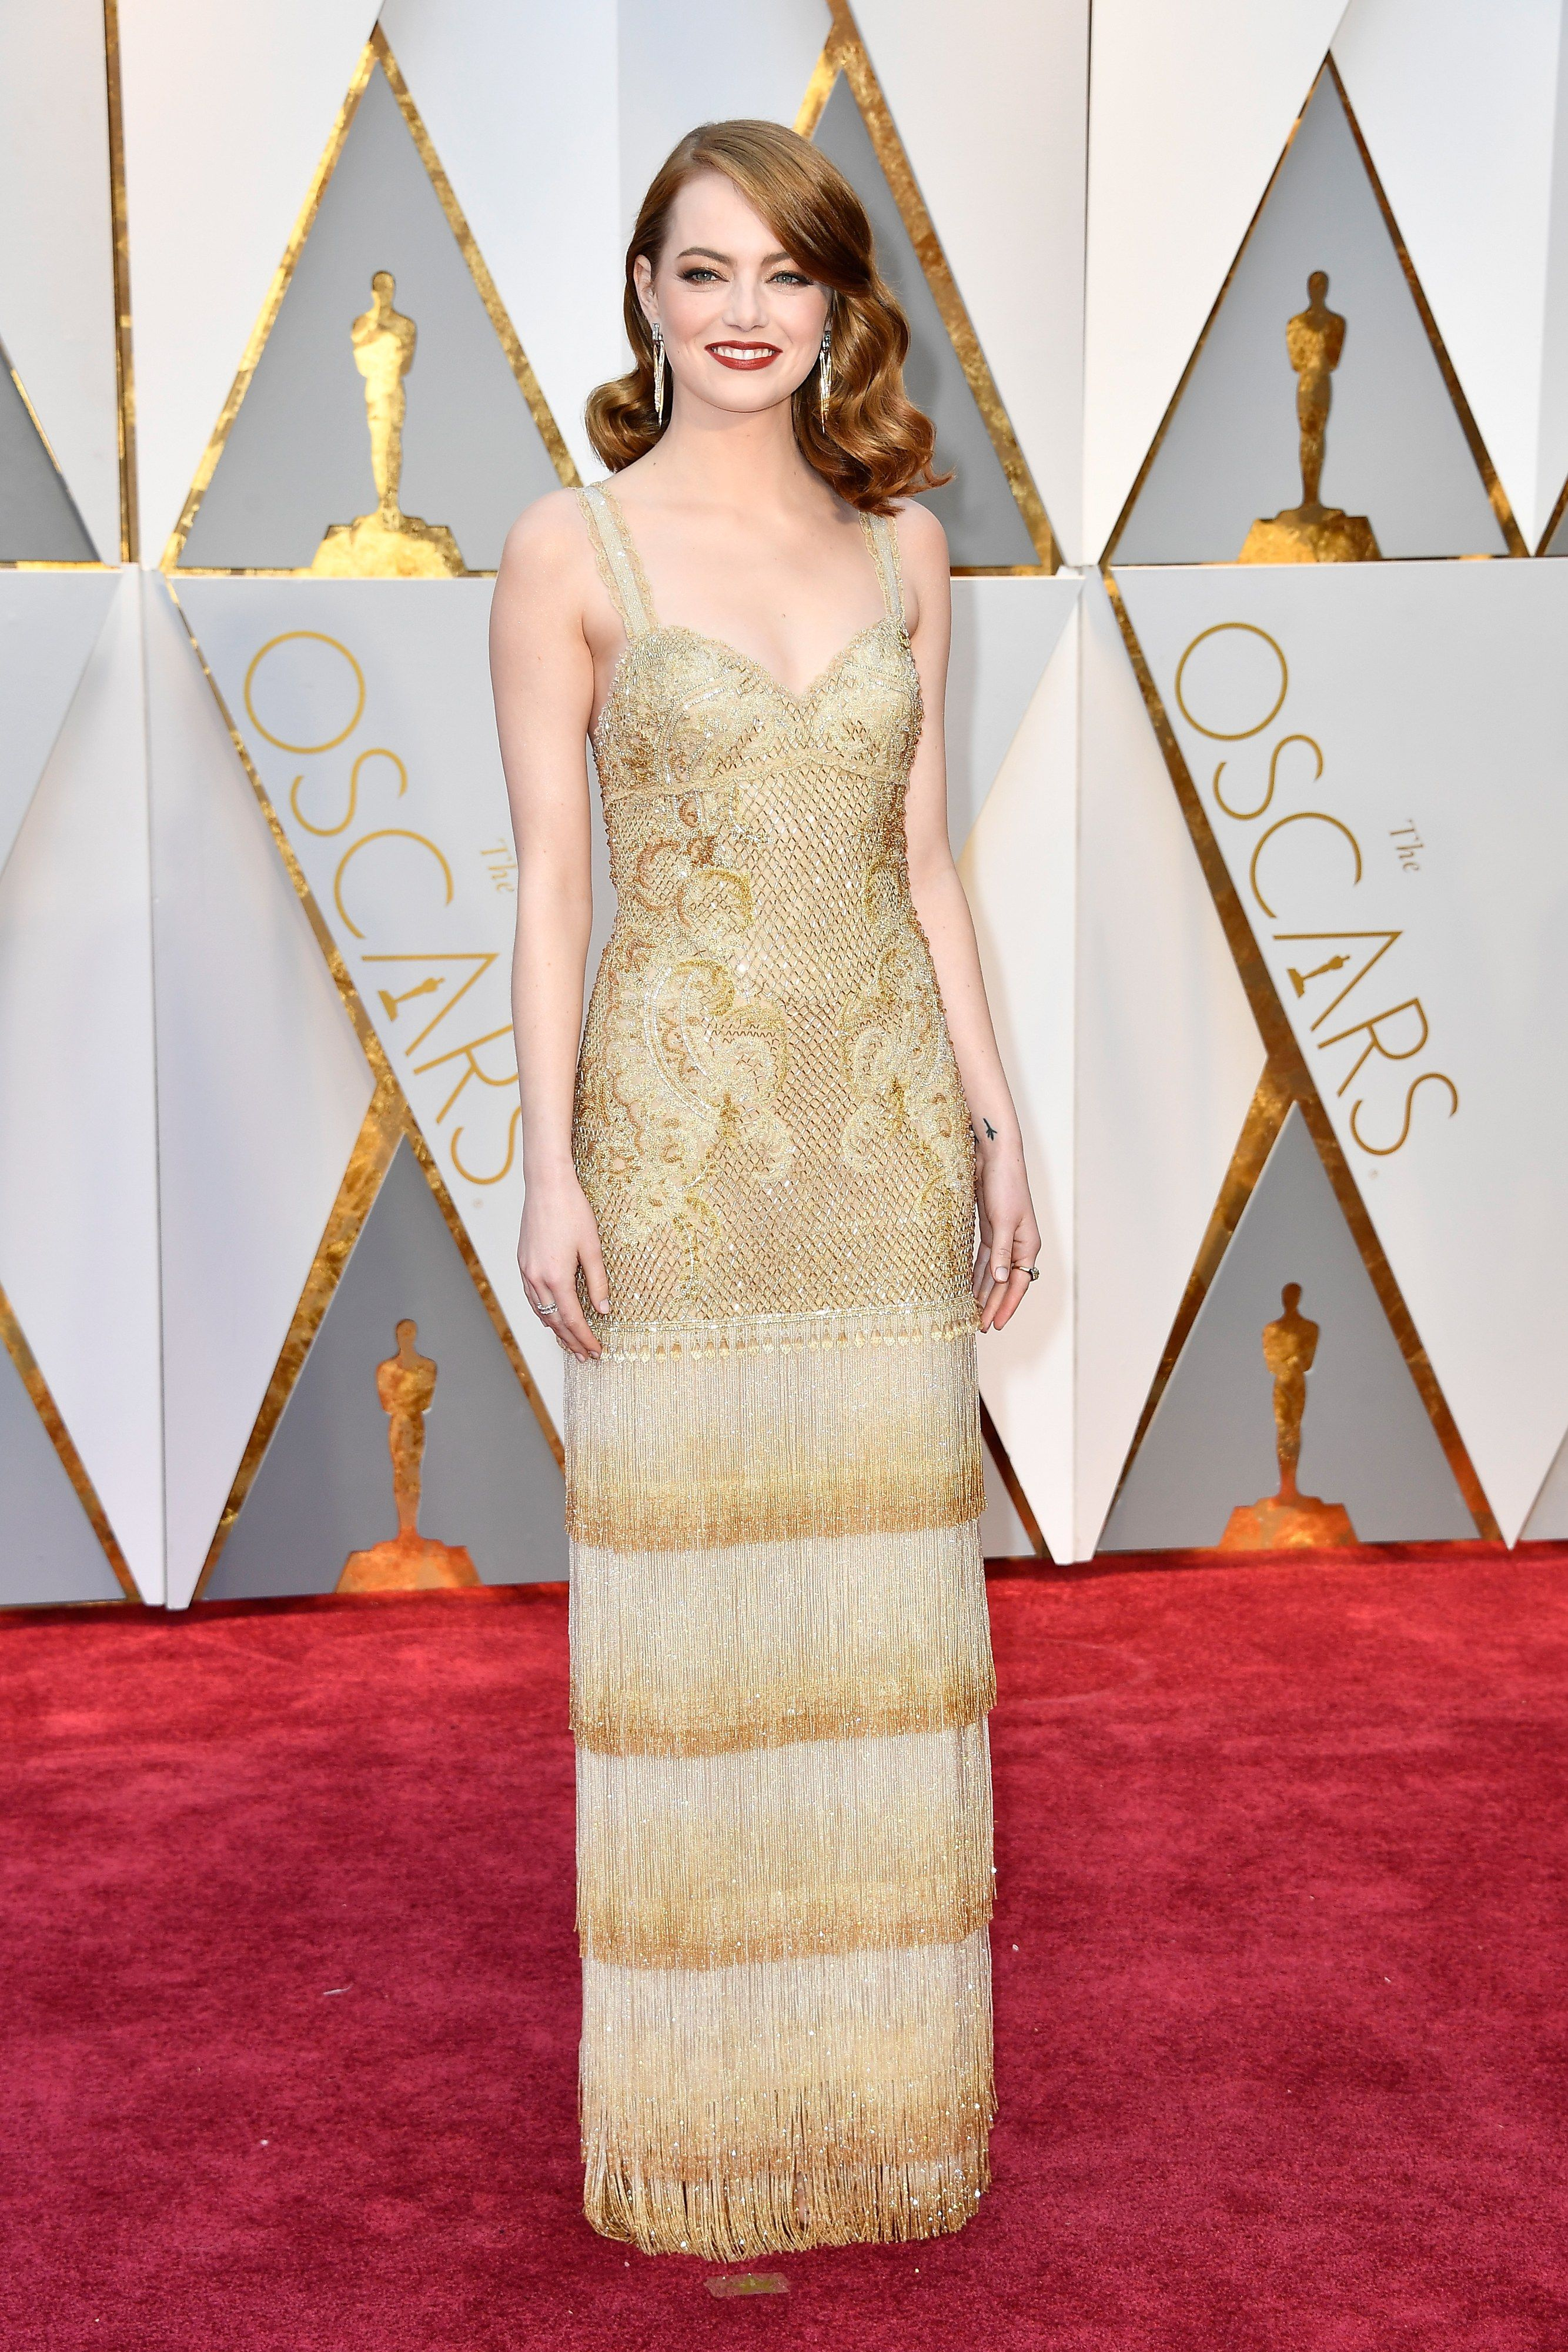 2017 Oscars - Emma Stone in Givenchy Haute Couture and Tiffany & Co. jewelry